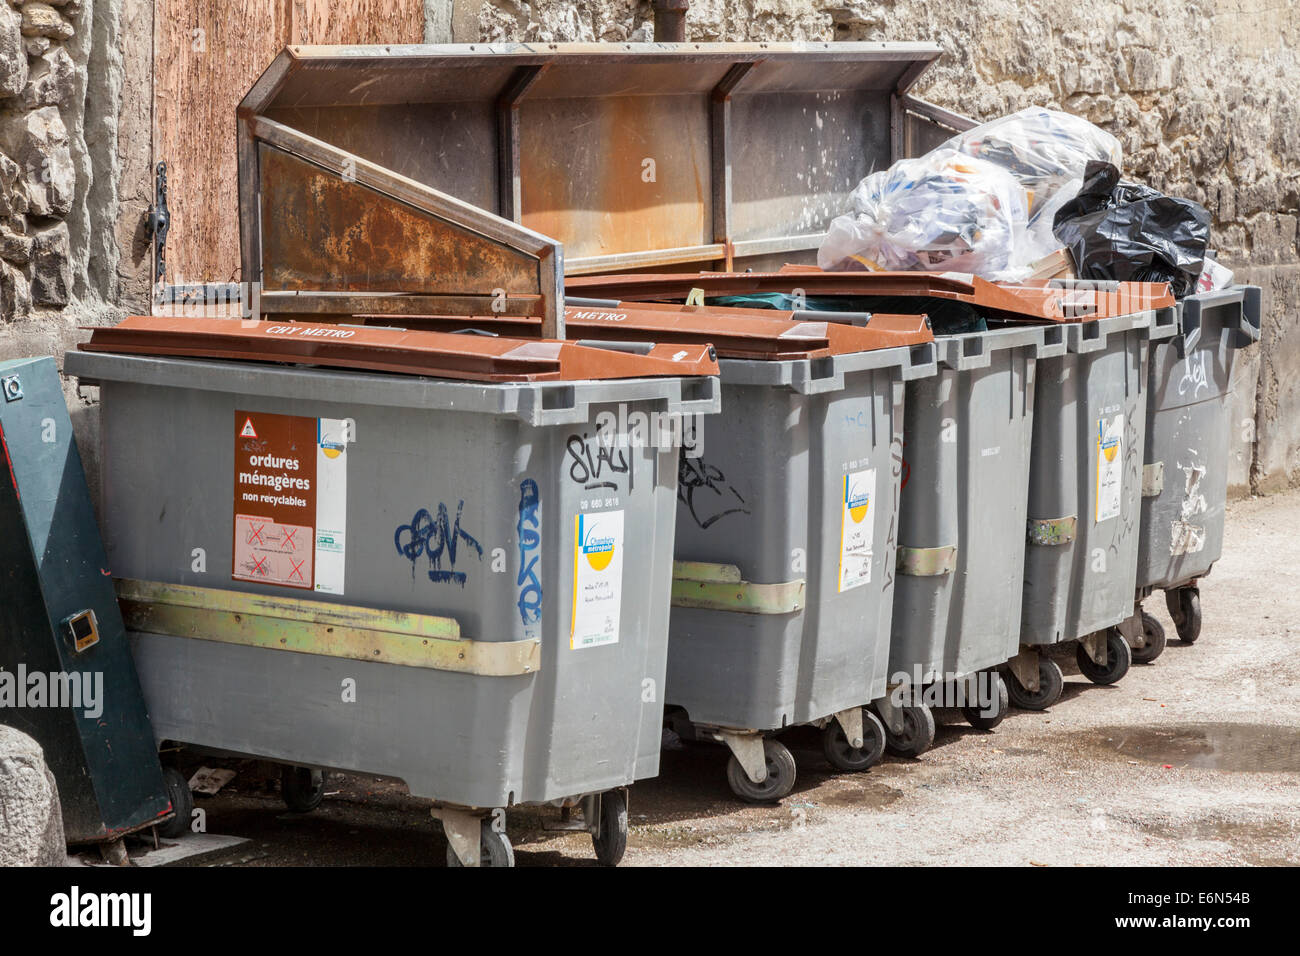 Rubbish and recycling bins, Chambery,  Savoie, Rhone-Alpes, France Stock Photo